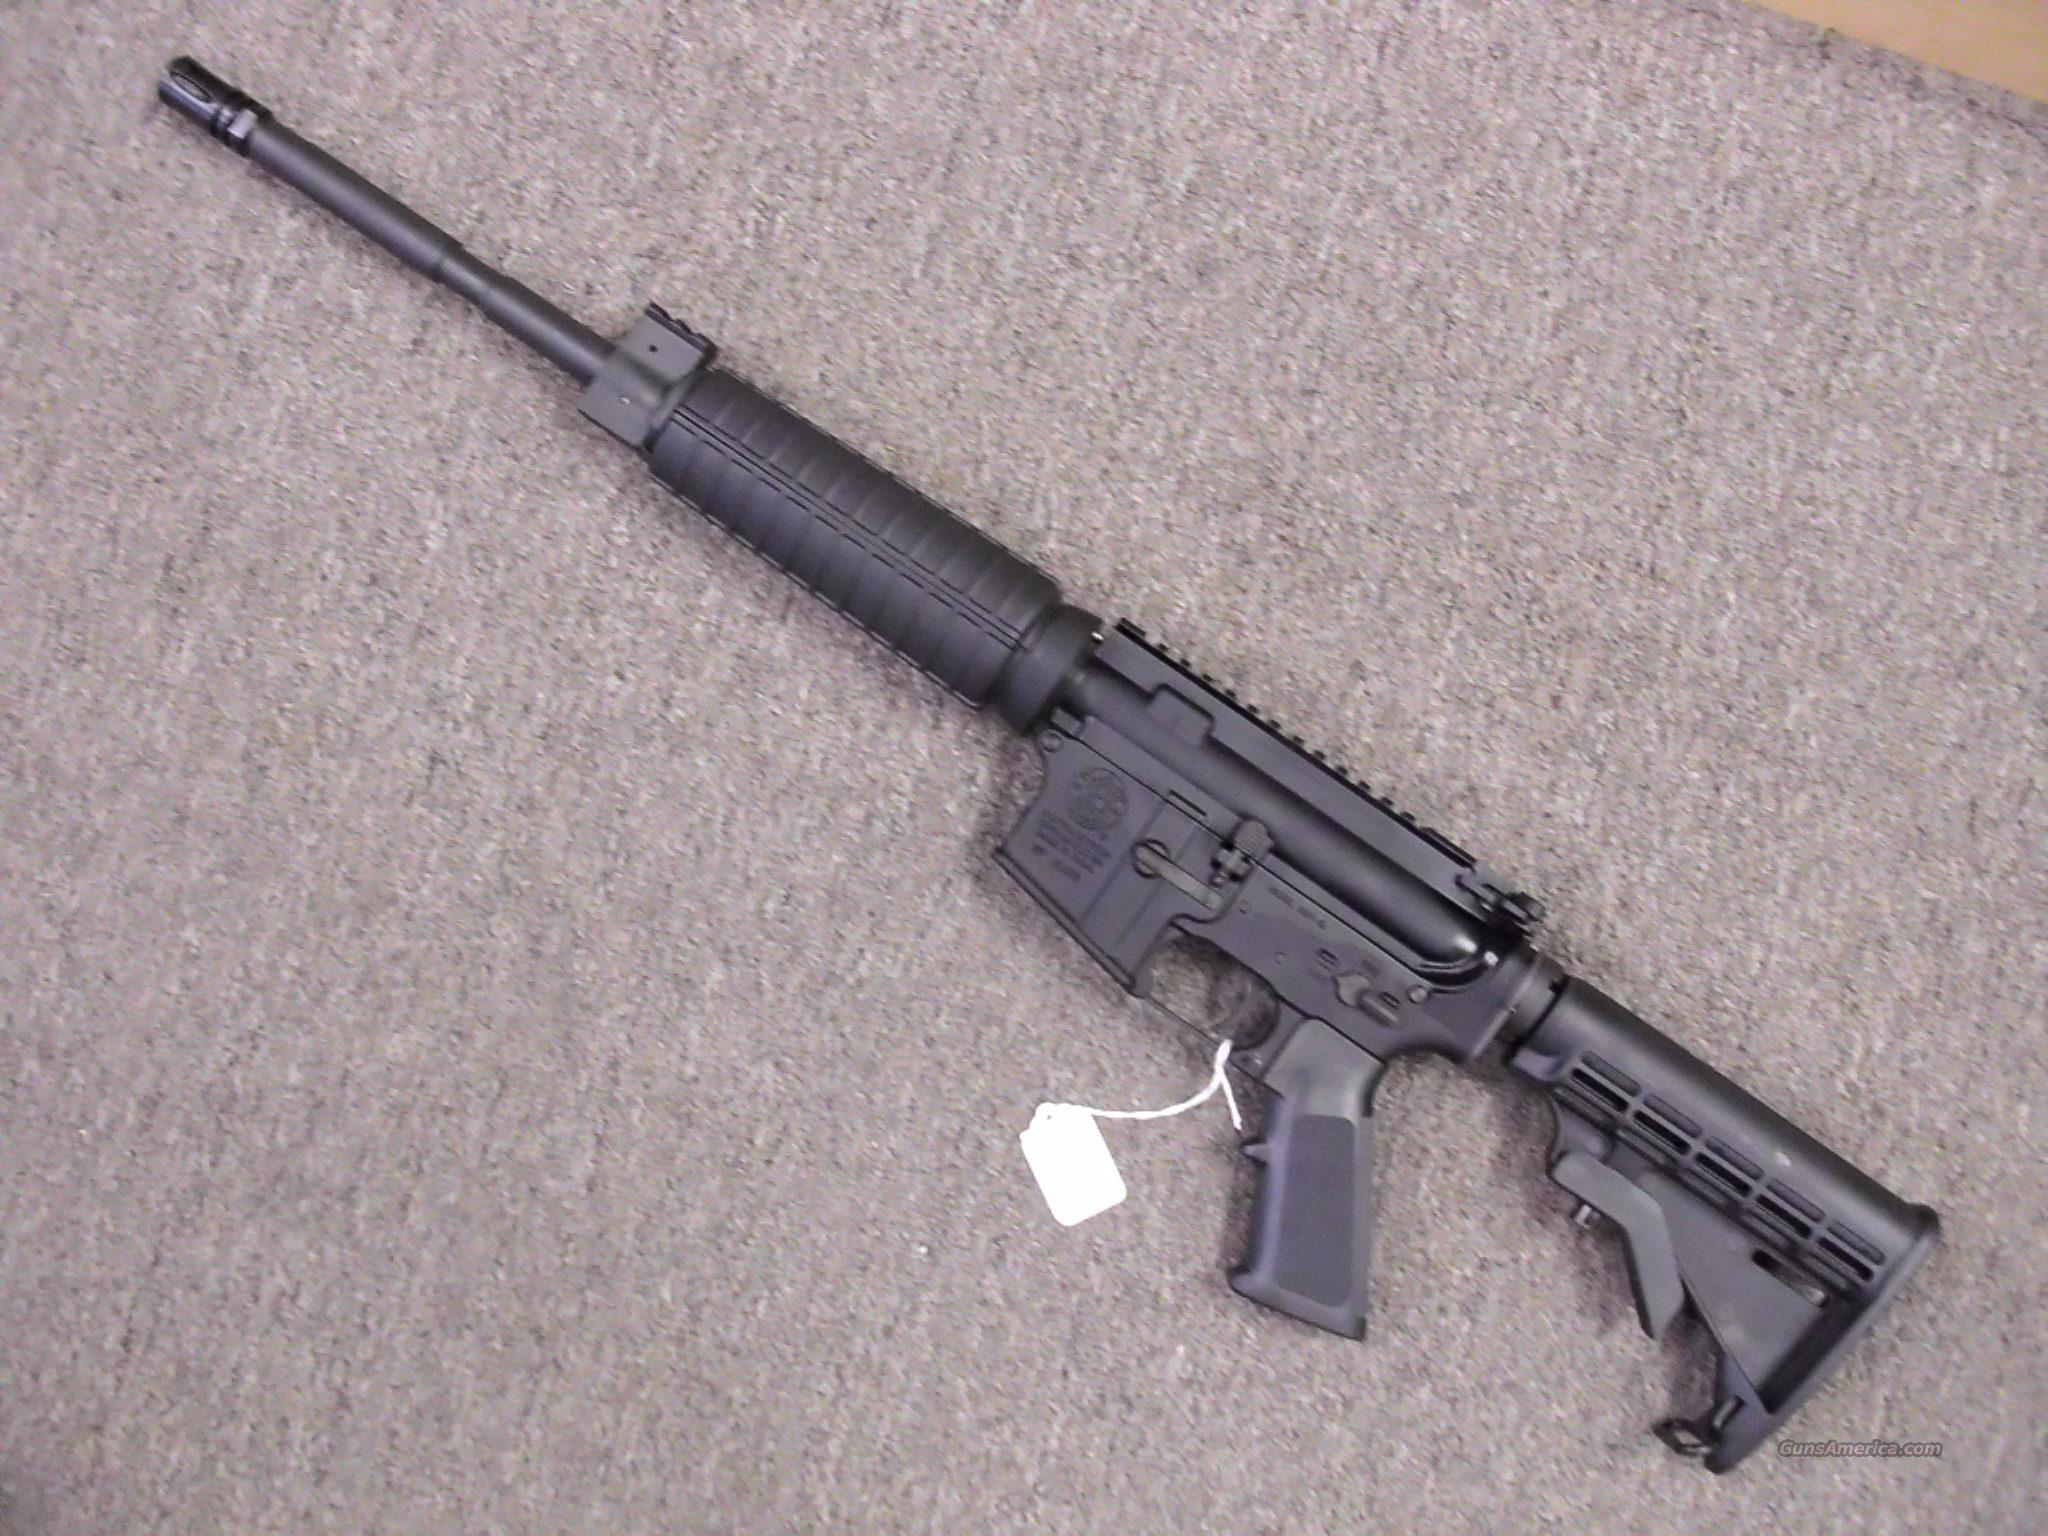 Smith & Wesson S&W M&P 15R 5.56 NEW Optic Ready  Guns > Rifles > Smith & Wesson Rifles > M&P